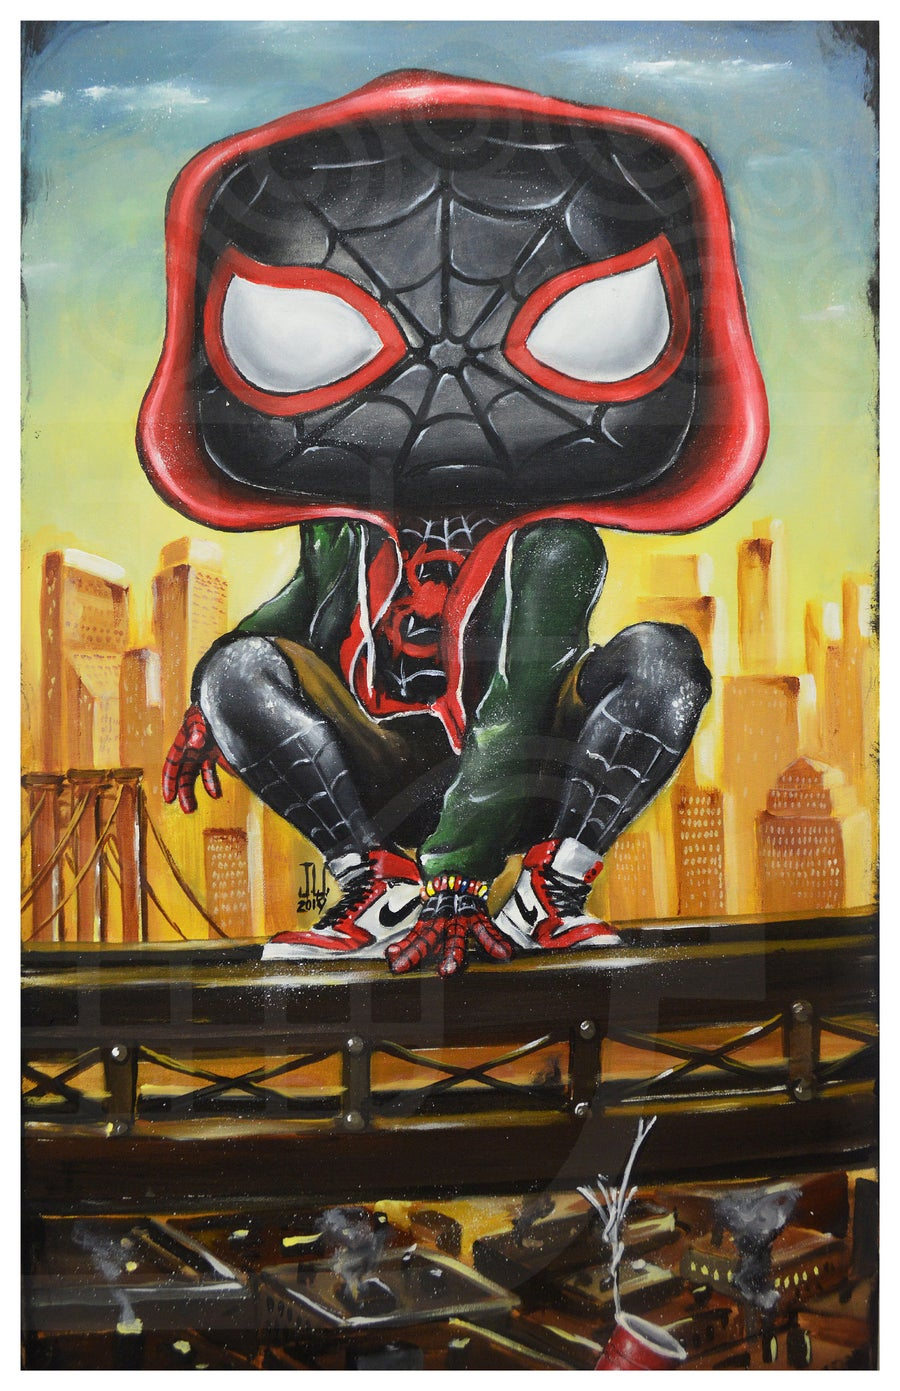 Image of Miles Pop Morales Jeremy Worst Spiderman avengers marvel comics painting fan art graffiti city urban